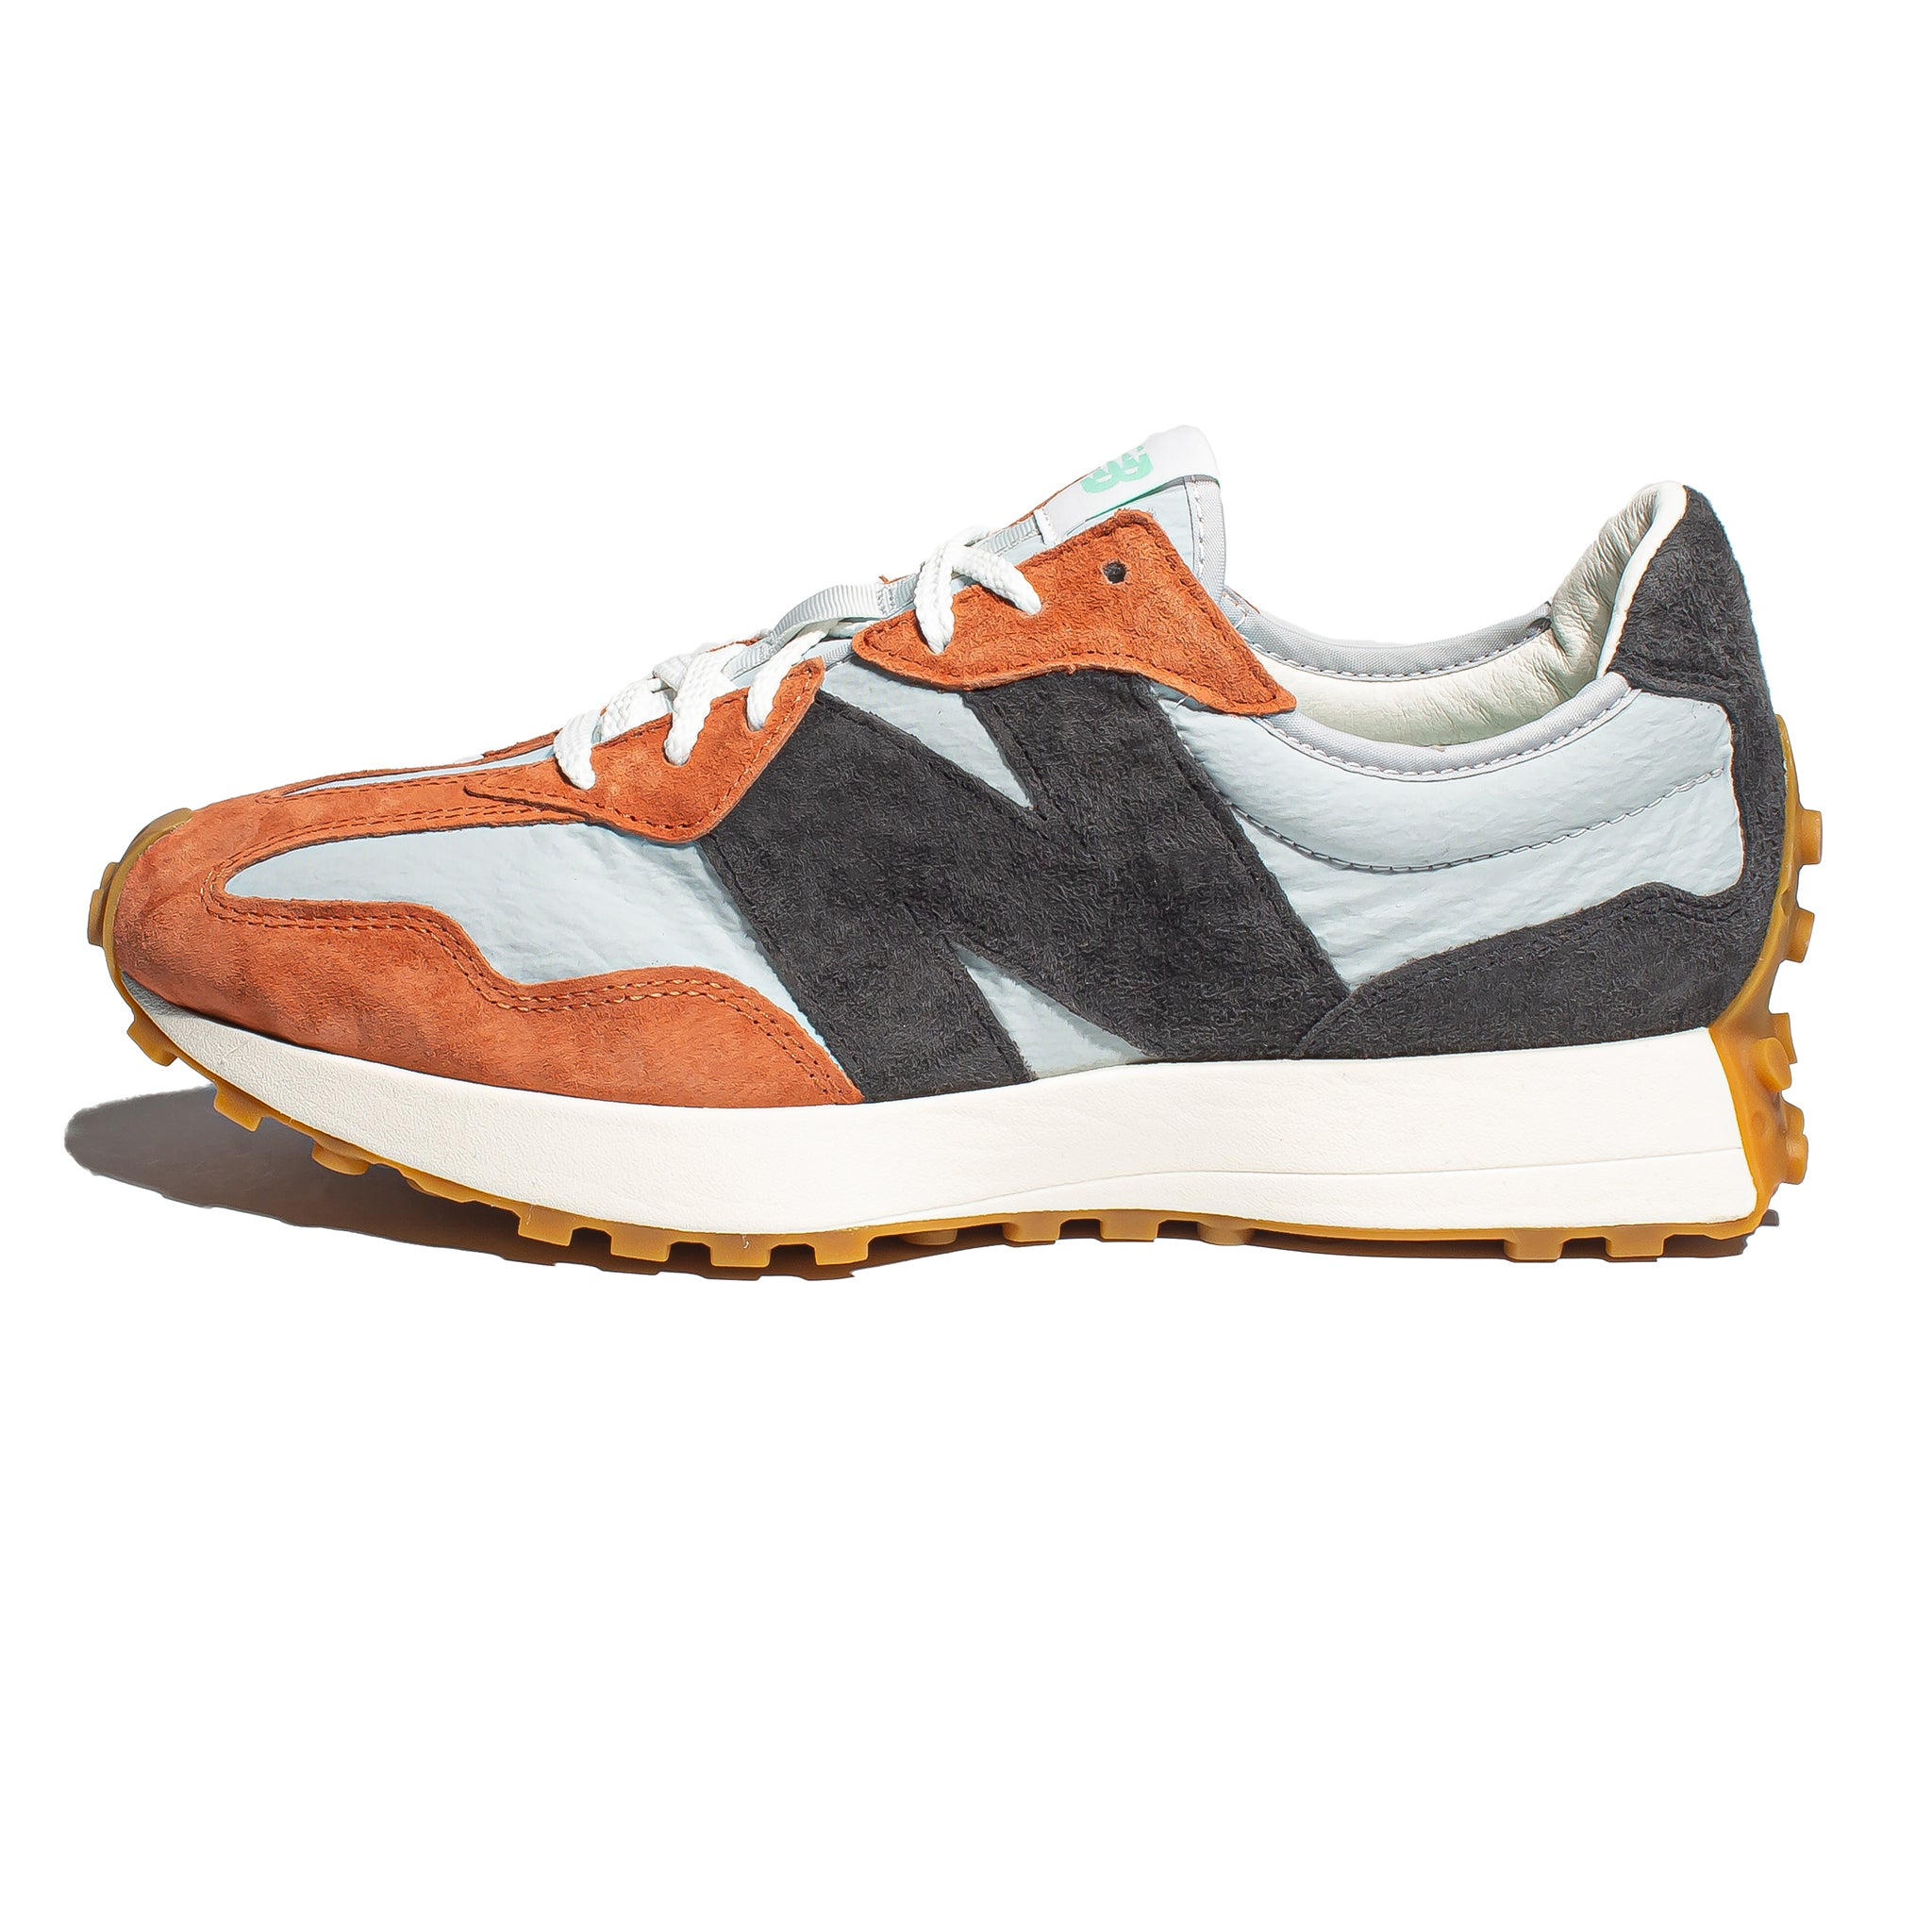 New Balance x J.CREW MS327JC1 'Rust'